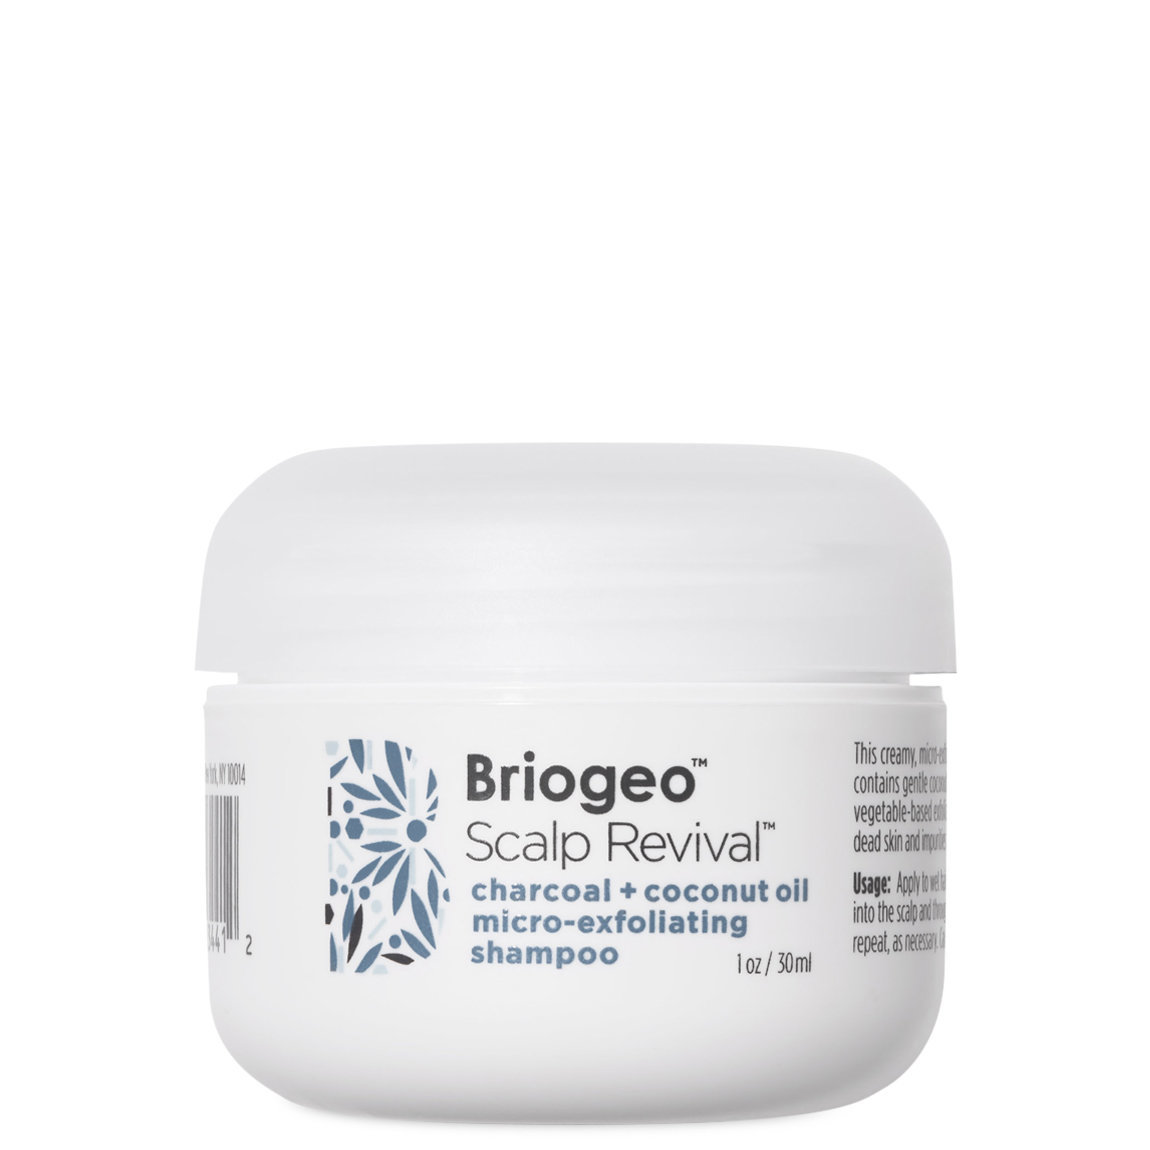 Briogeo Scalp Revival Charcoal + Coconut Oil Micro-Exfoliating Shampoo 1 oz product swatch.